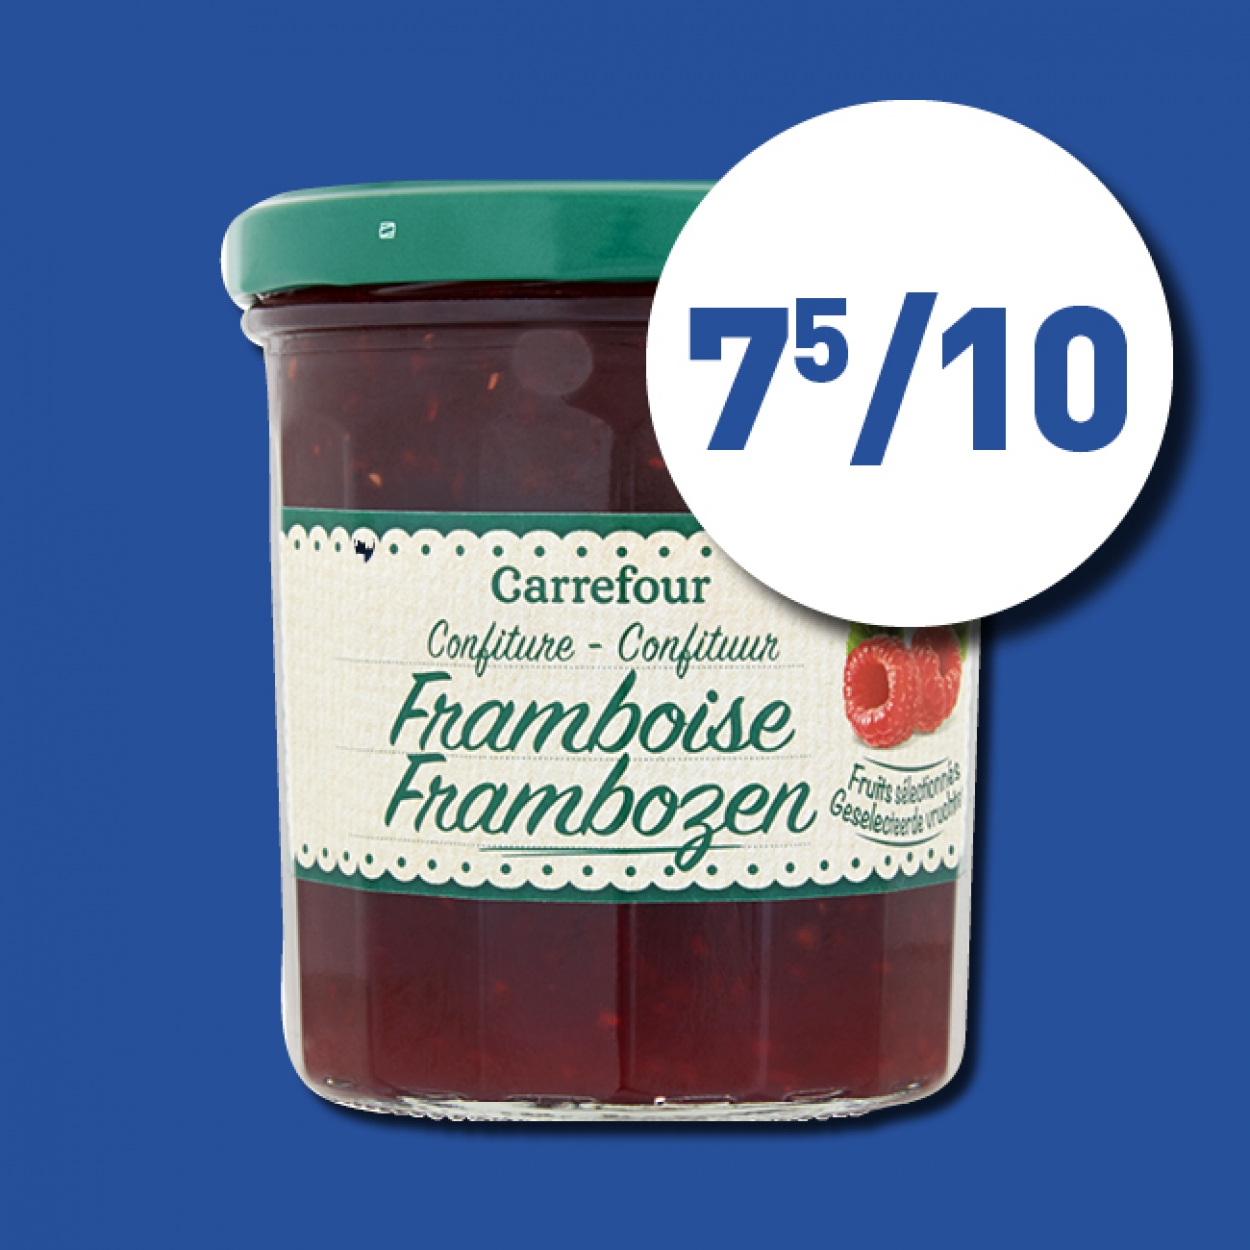 Confiture framboise Carrefour